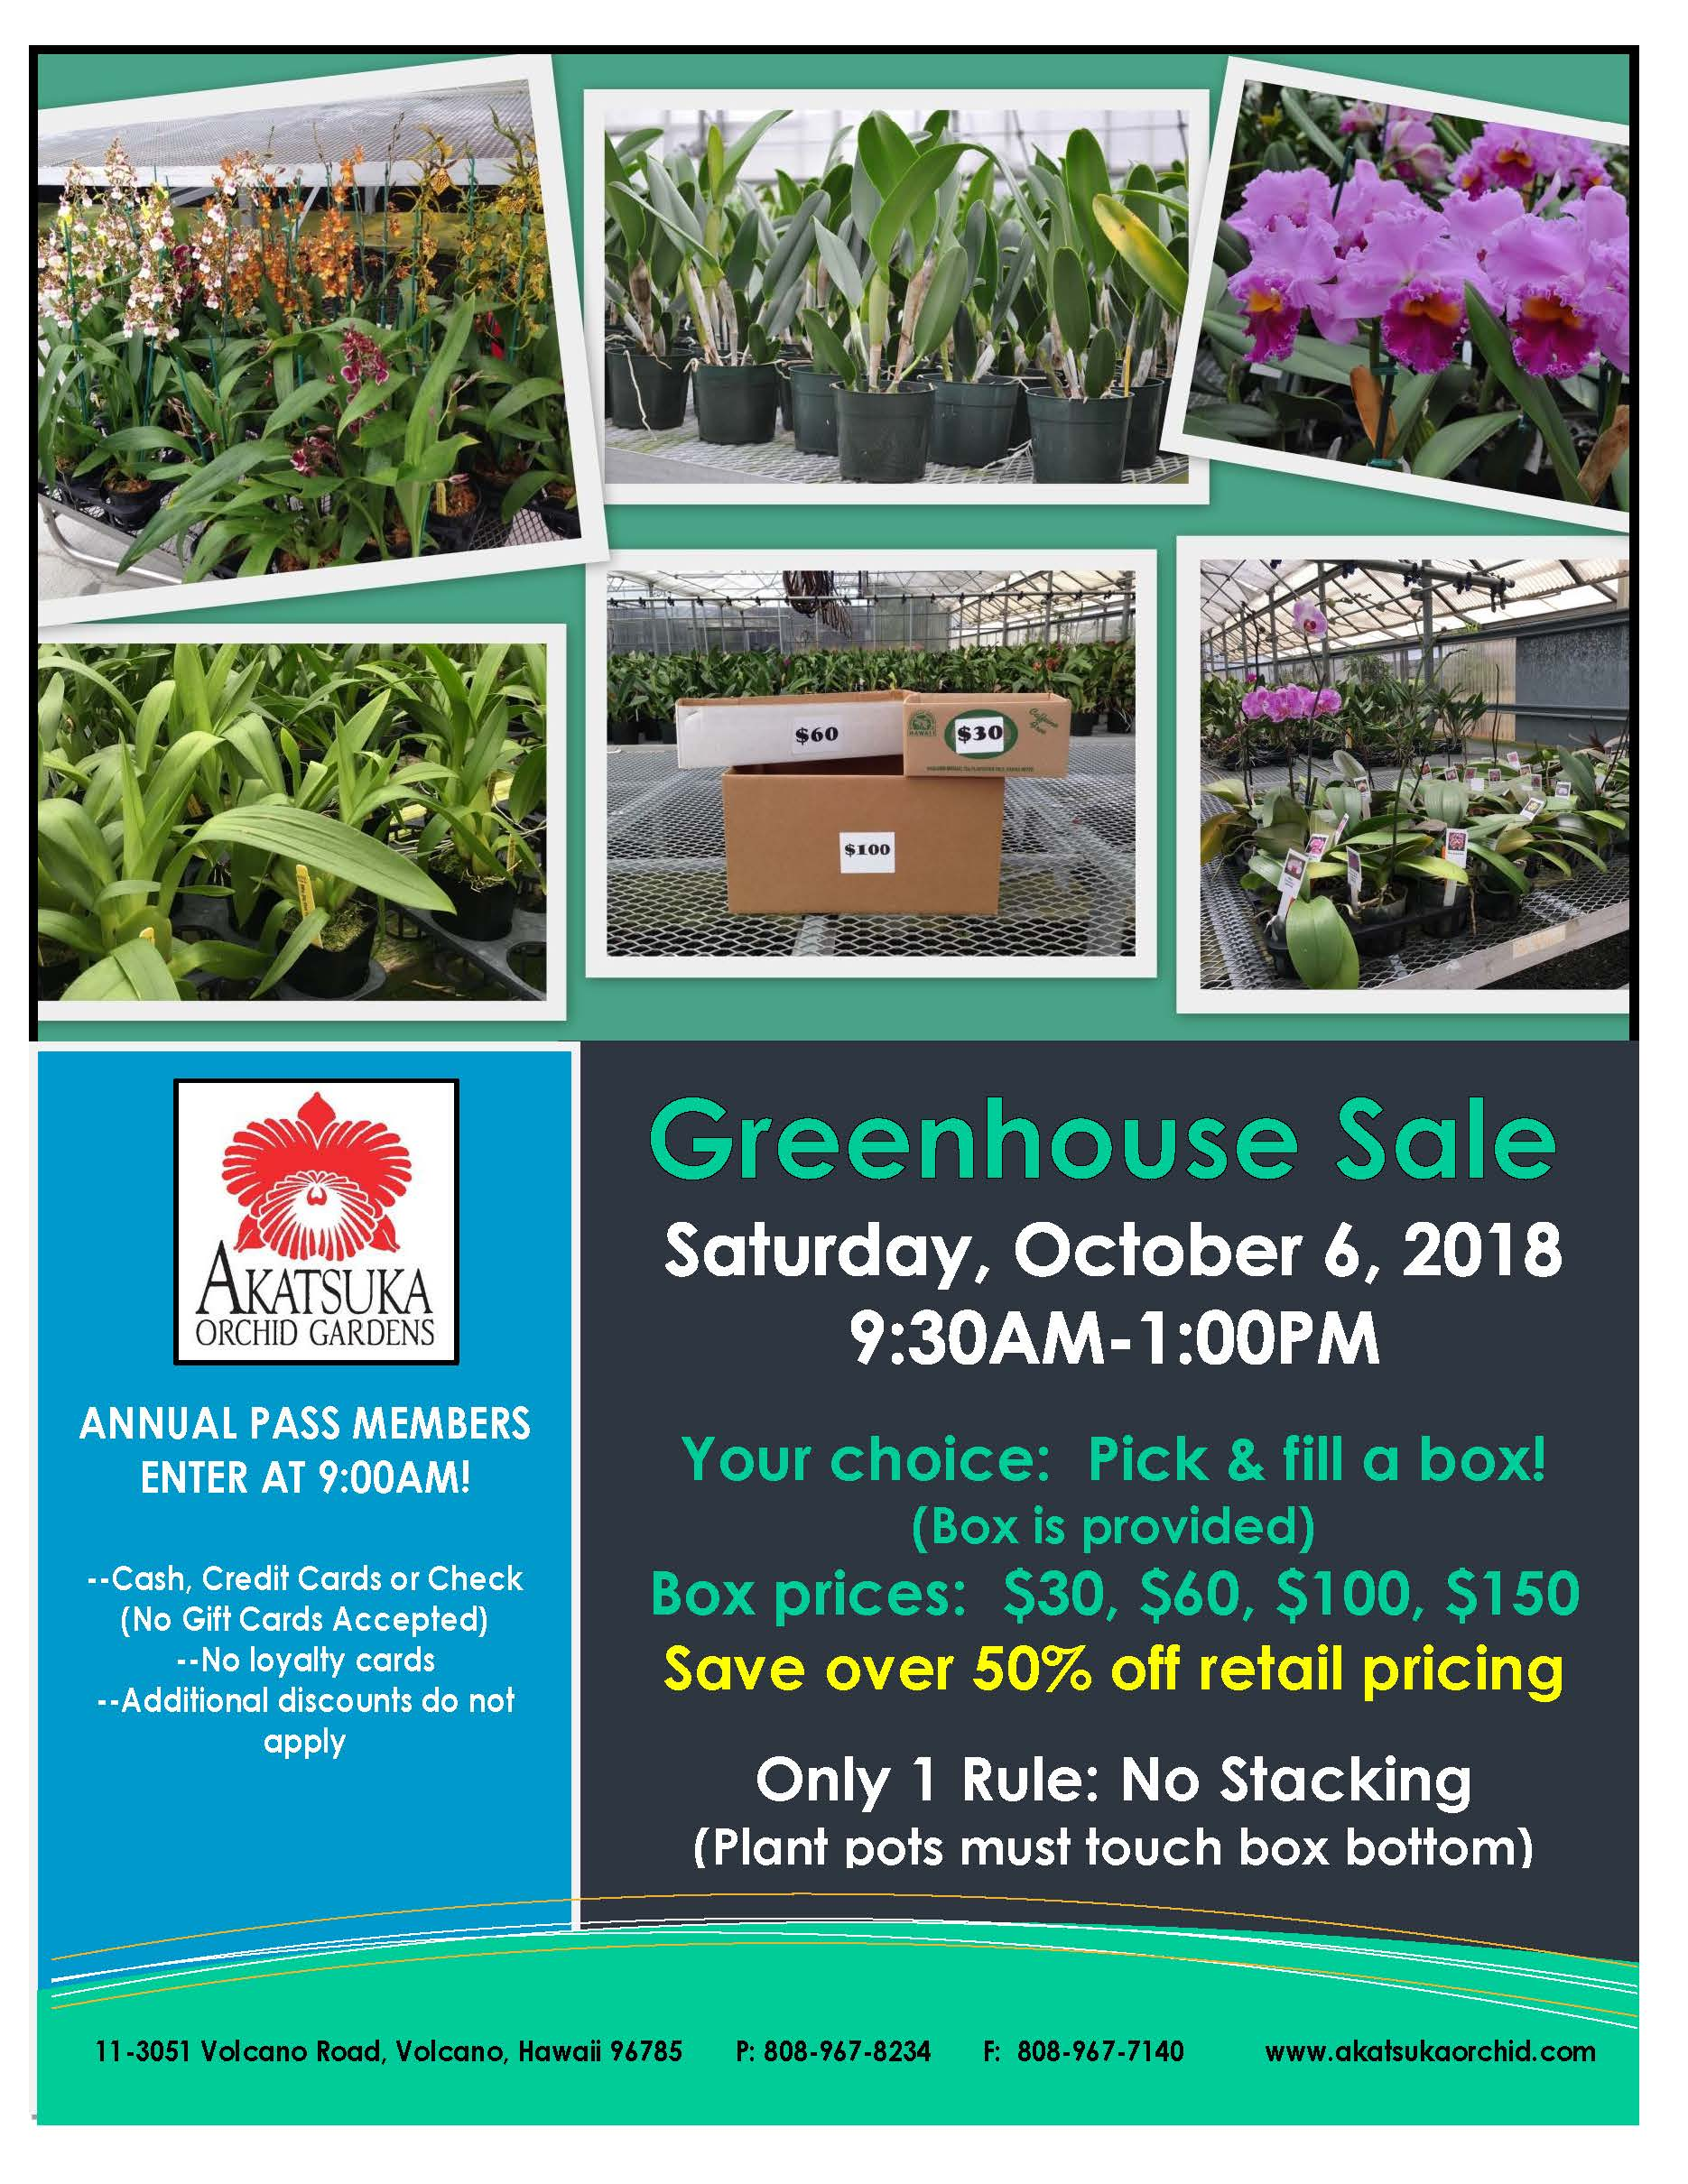 sidewalk-sale-flyer-2018-october-.jpg